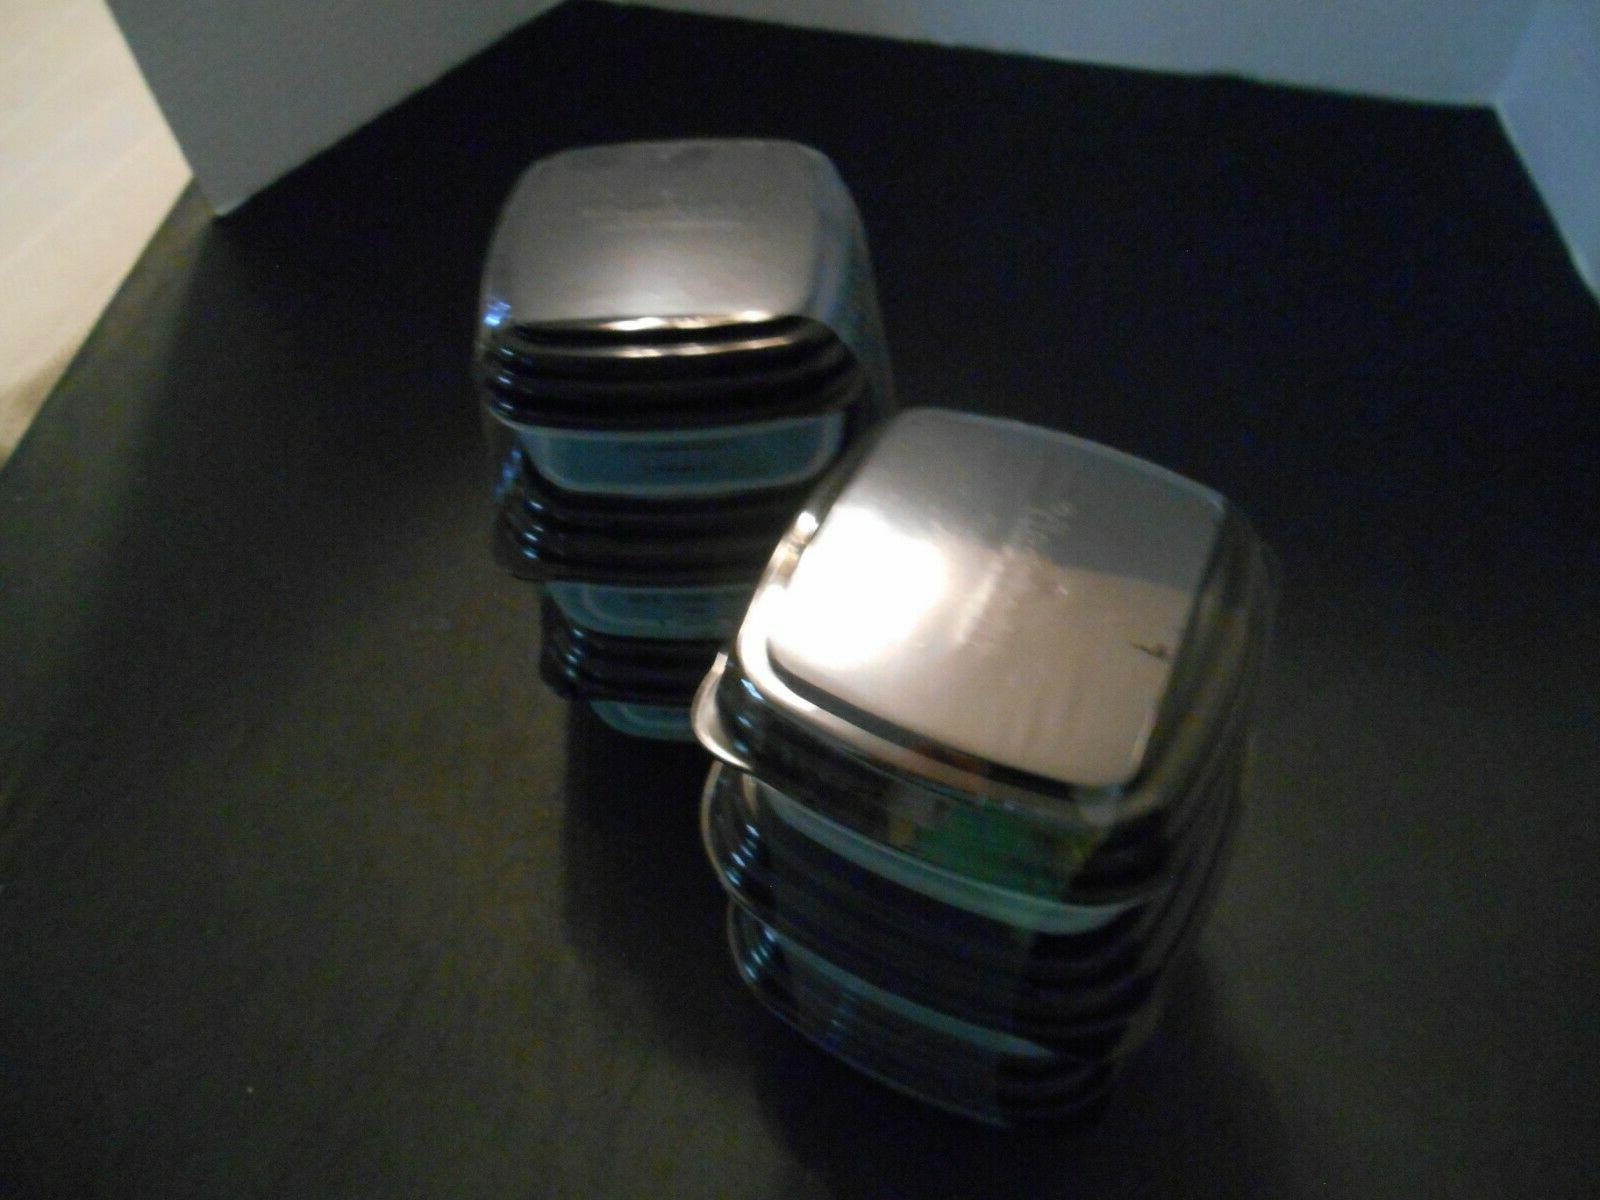 Lot of 6 Lunch Box Containers & cup,